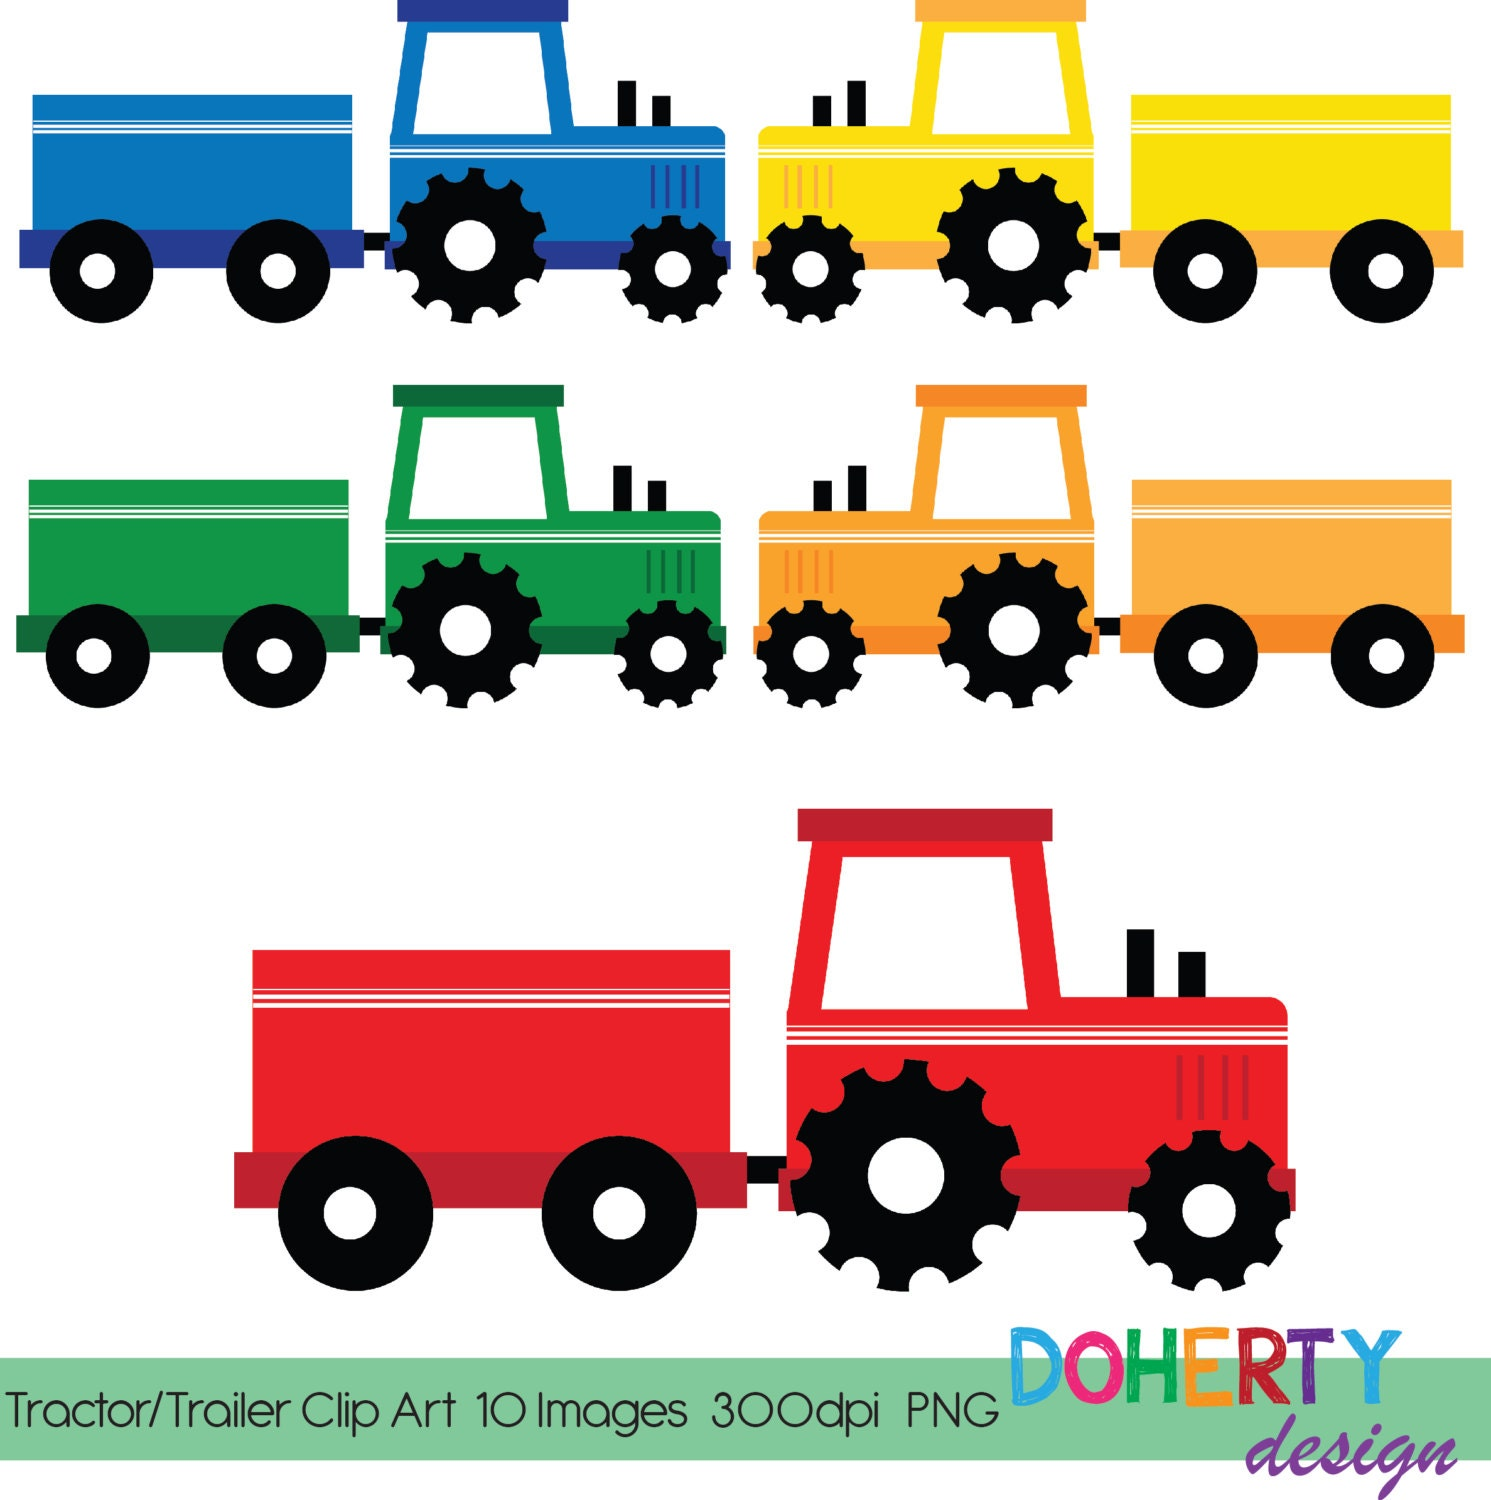 Tractor Trailer Clip Art : Instant download tractor trailer frame clip art